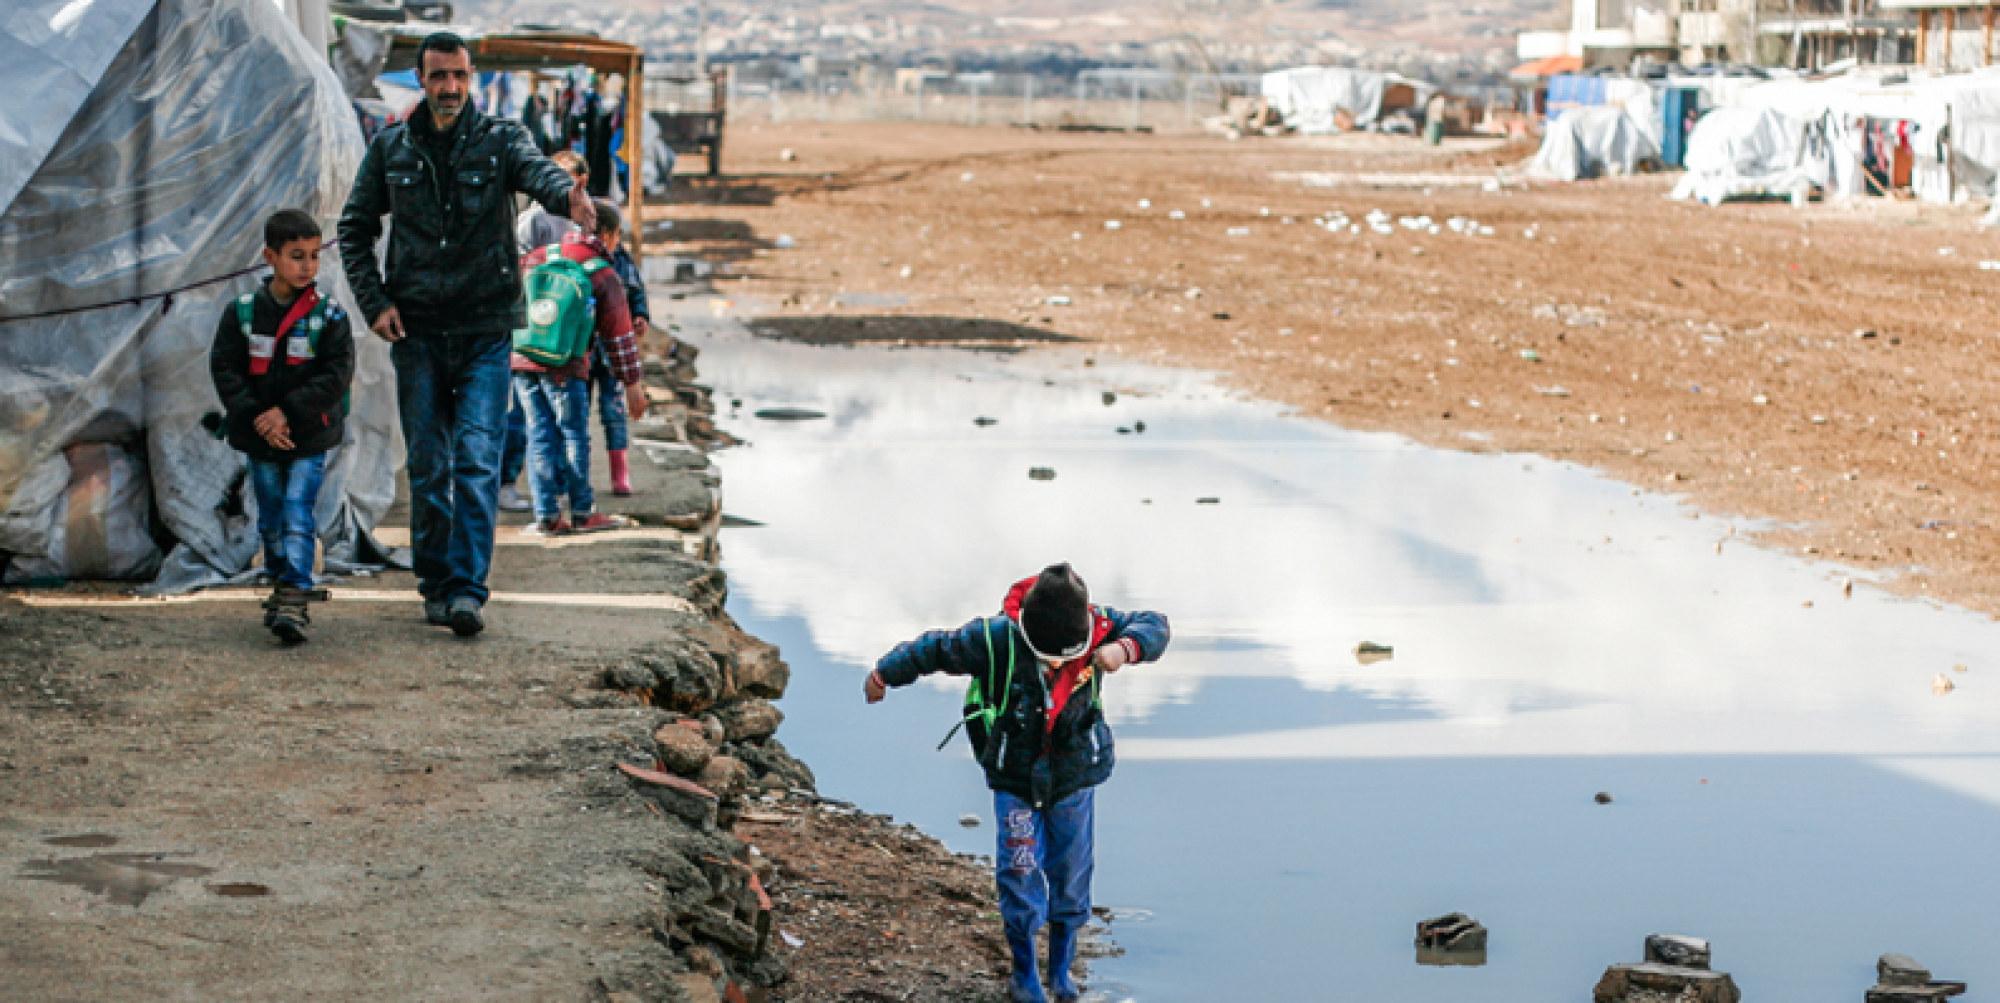 Syrian refugees walk to school at a refugee camp in Bekaa Valley, Lebanon. The country currently hosts over 1 million refugees. The EU can and should do more to take care of the forcibly displaced, thereby relieving pressure on other countries.